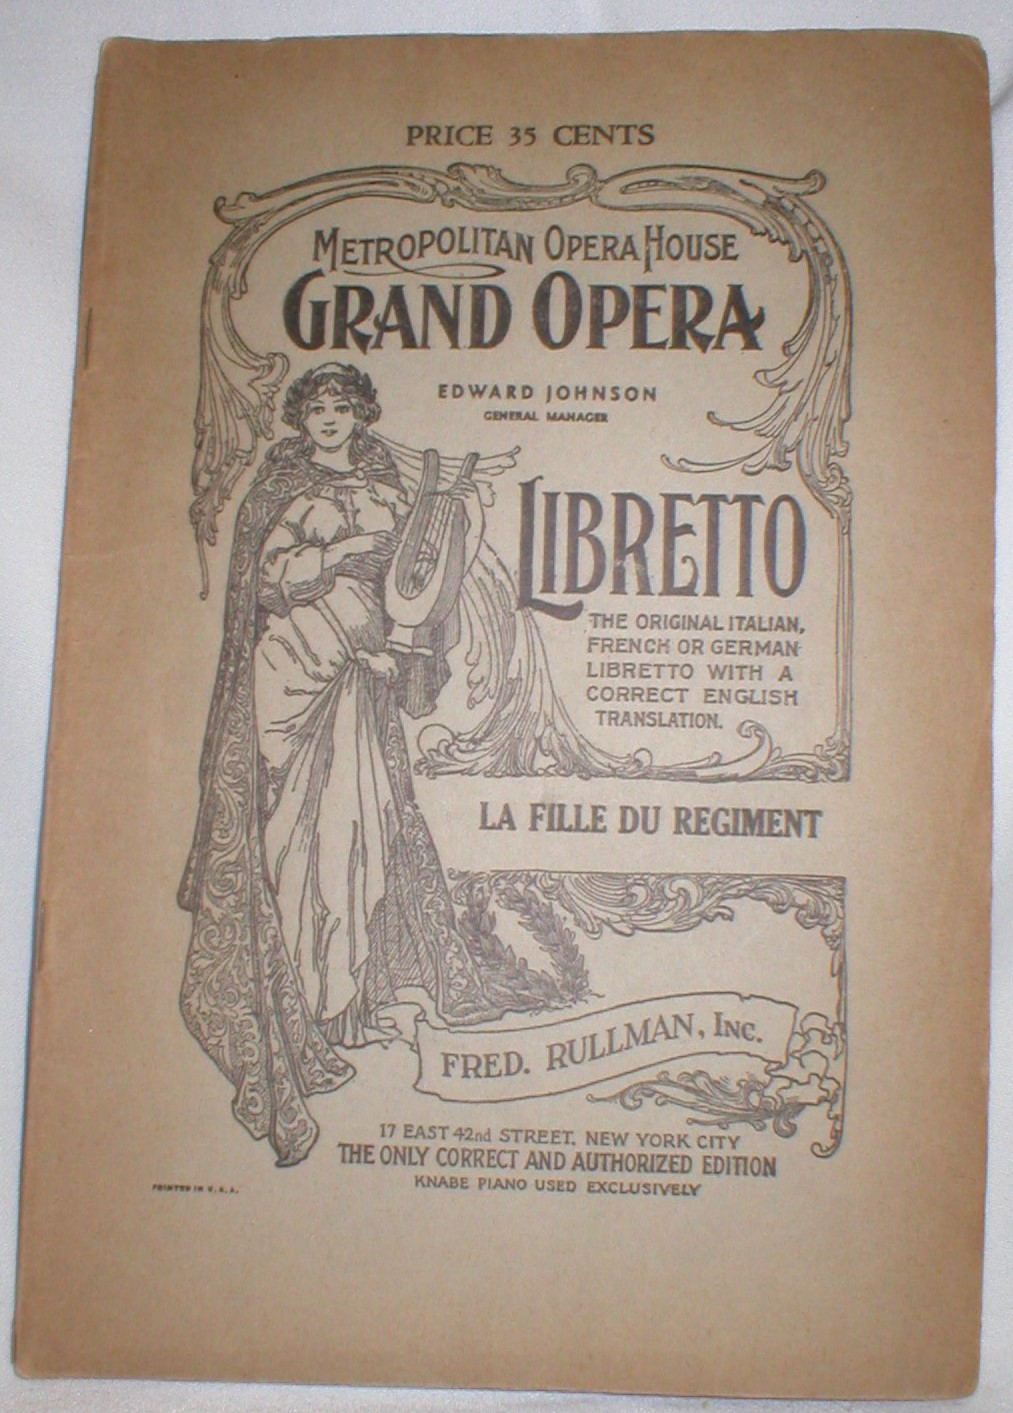 Image for The Daughter of the Regiment Libretto